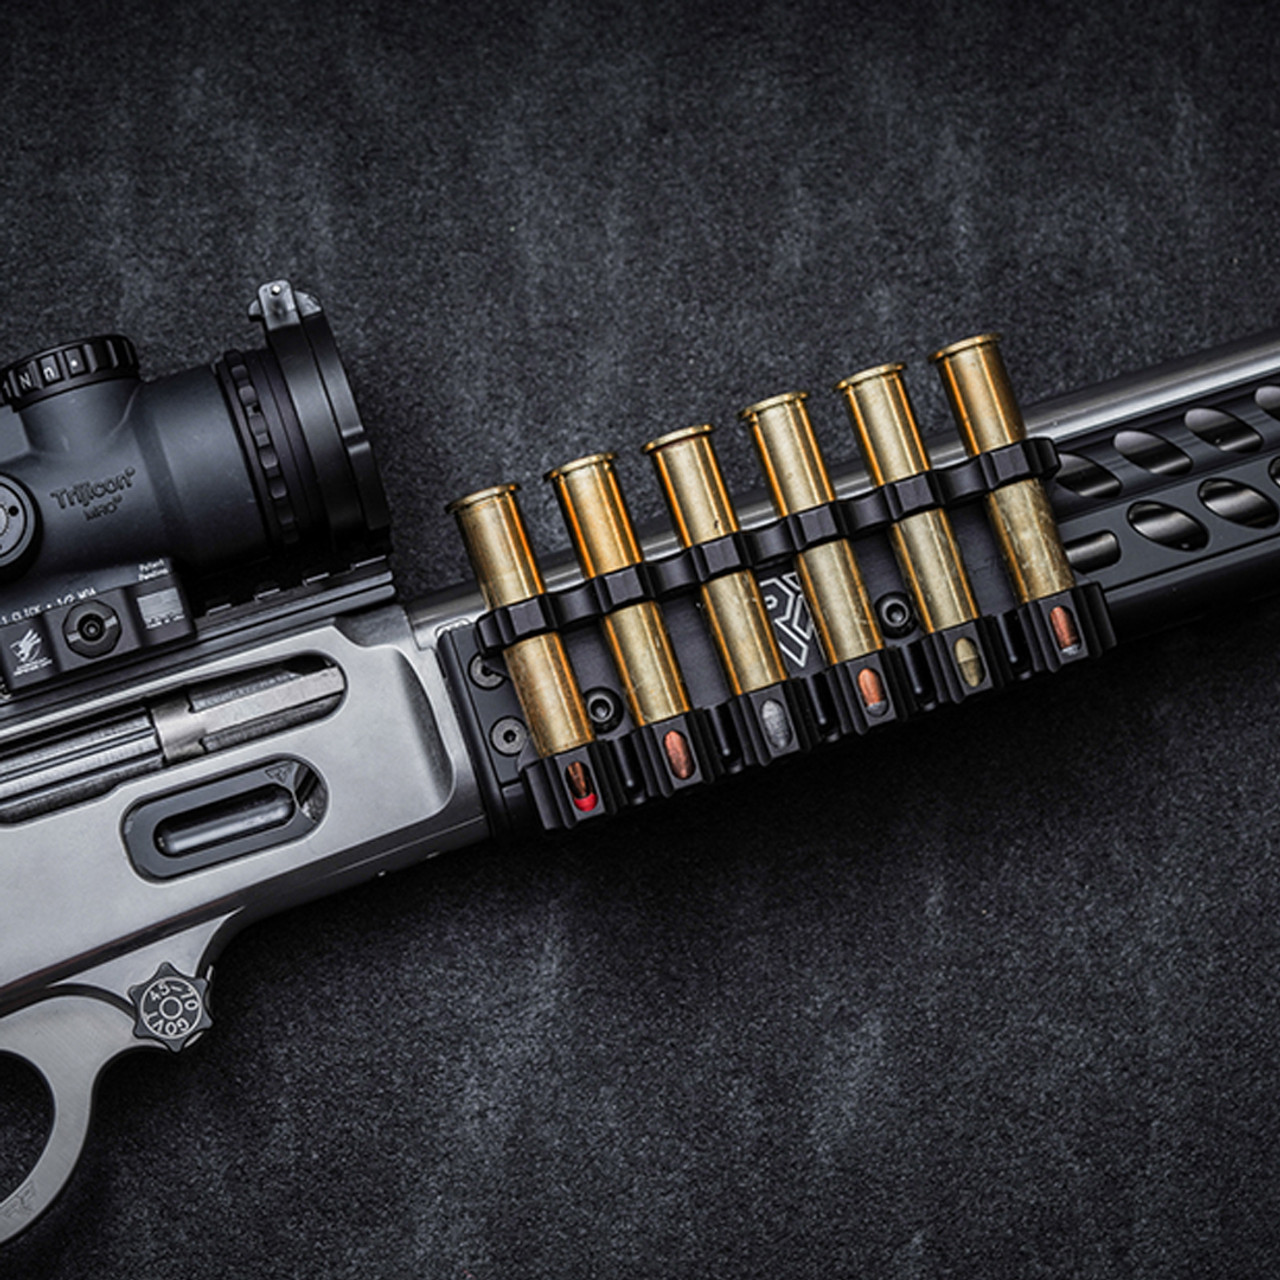 Ranger Point Precision M-LOK 45-70 Cartridge Quiver holds six cartridges to complement our popular M-LOK forearm rails for Marlin, Henry, and Rossi lever-action rifles (will also work with any M-LOK rail on the market).